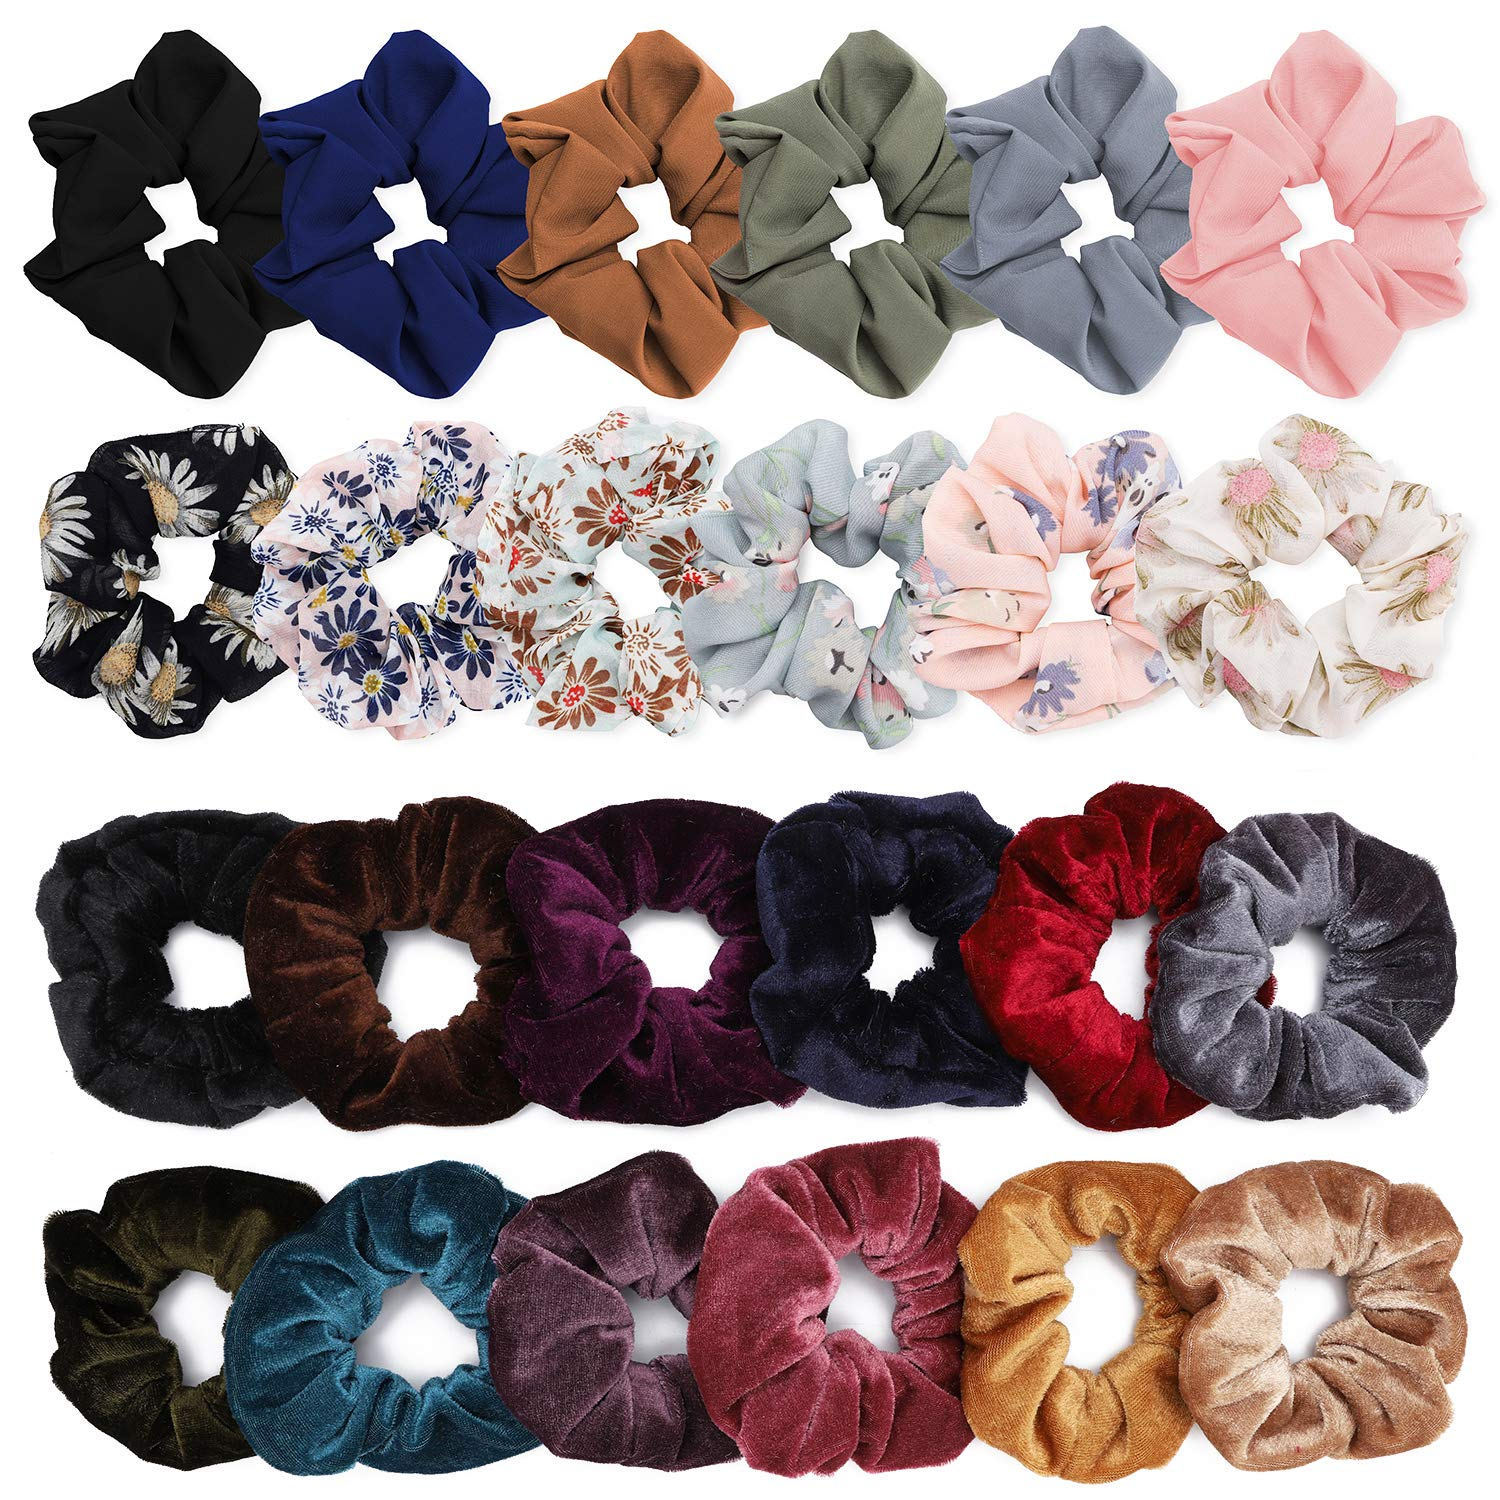 YESHM 24Pcs Chiffon Flower Hair Scrunchies,Velvet Colorful Hair Ties,Elastic Hair Bobbles for Ponytail Holder,Hair Accessories Ropes Scrunchie for Women & Girls,Mixcolor Flower Printed & Solid Color WATINC